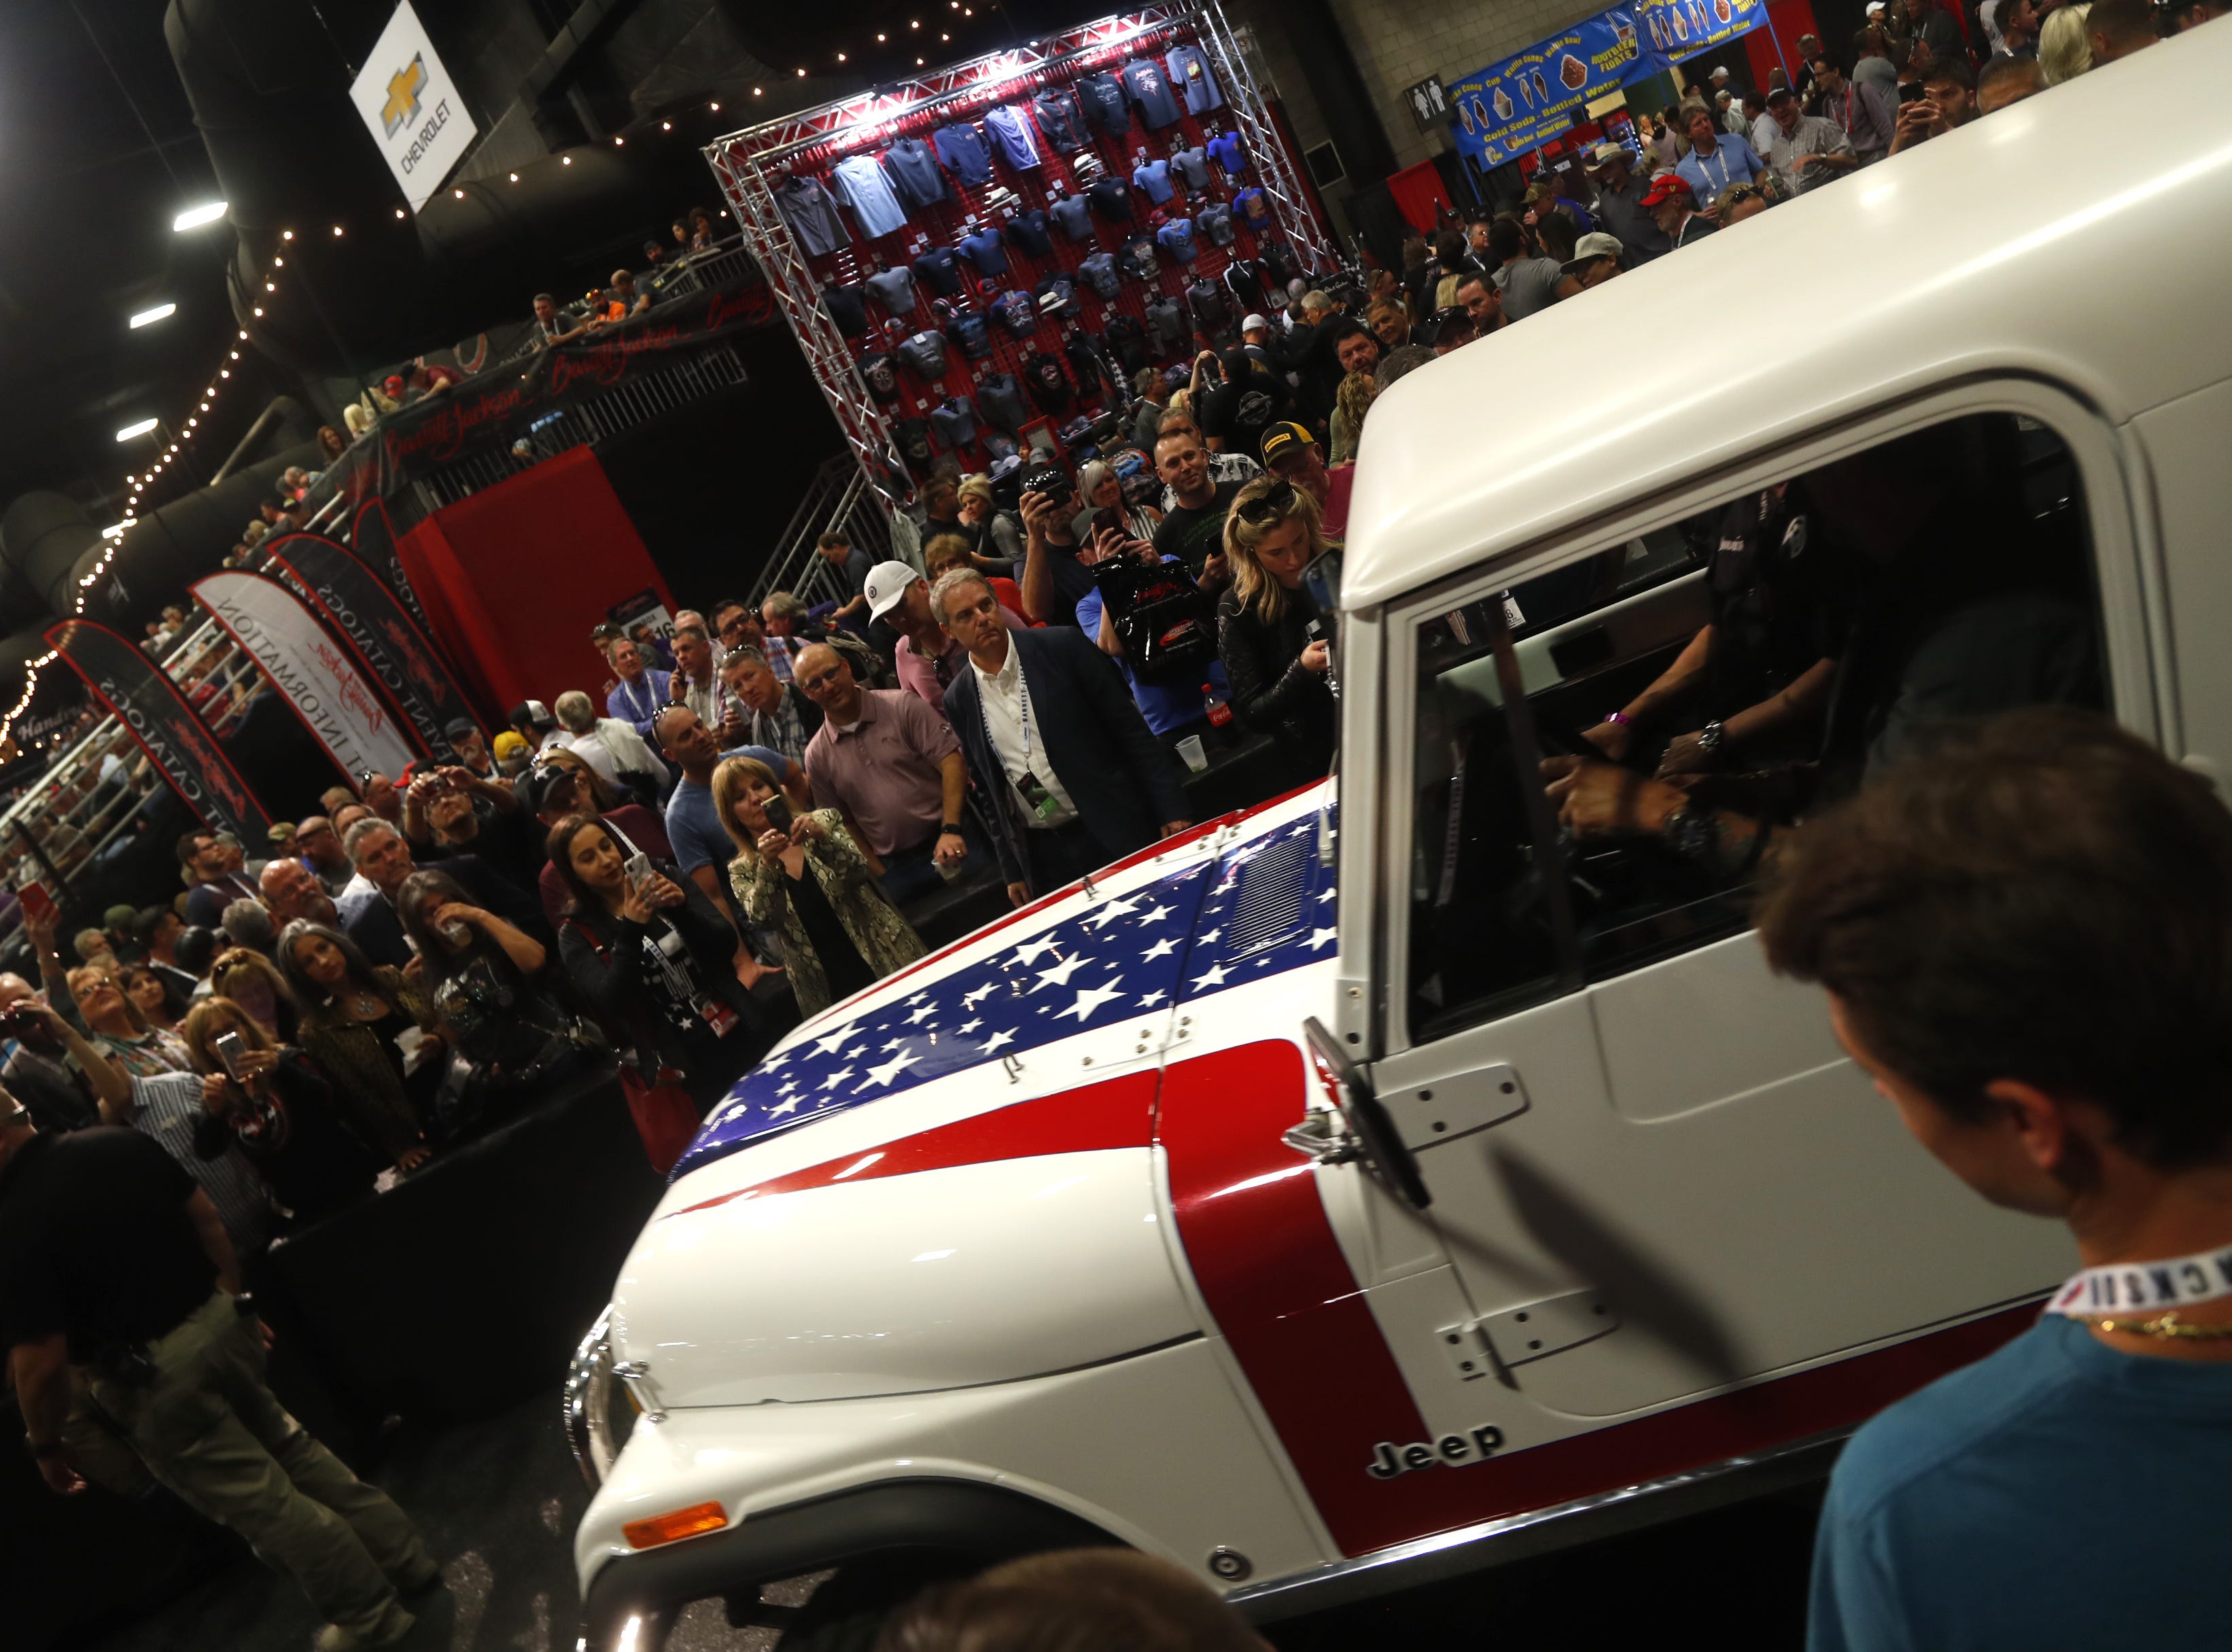 The custom Jeep restored by Gas Monkey Garage in partnership with Gary Sinise and being auctioned off for the Gary Sinise Foundation is brought onstage at the Barrett-Jackson auction at WestWorld in Scottsdale on Jan. 18, 2019.